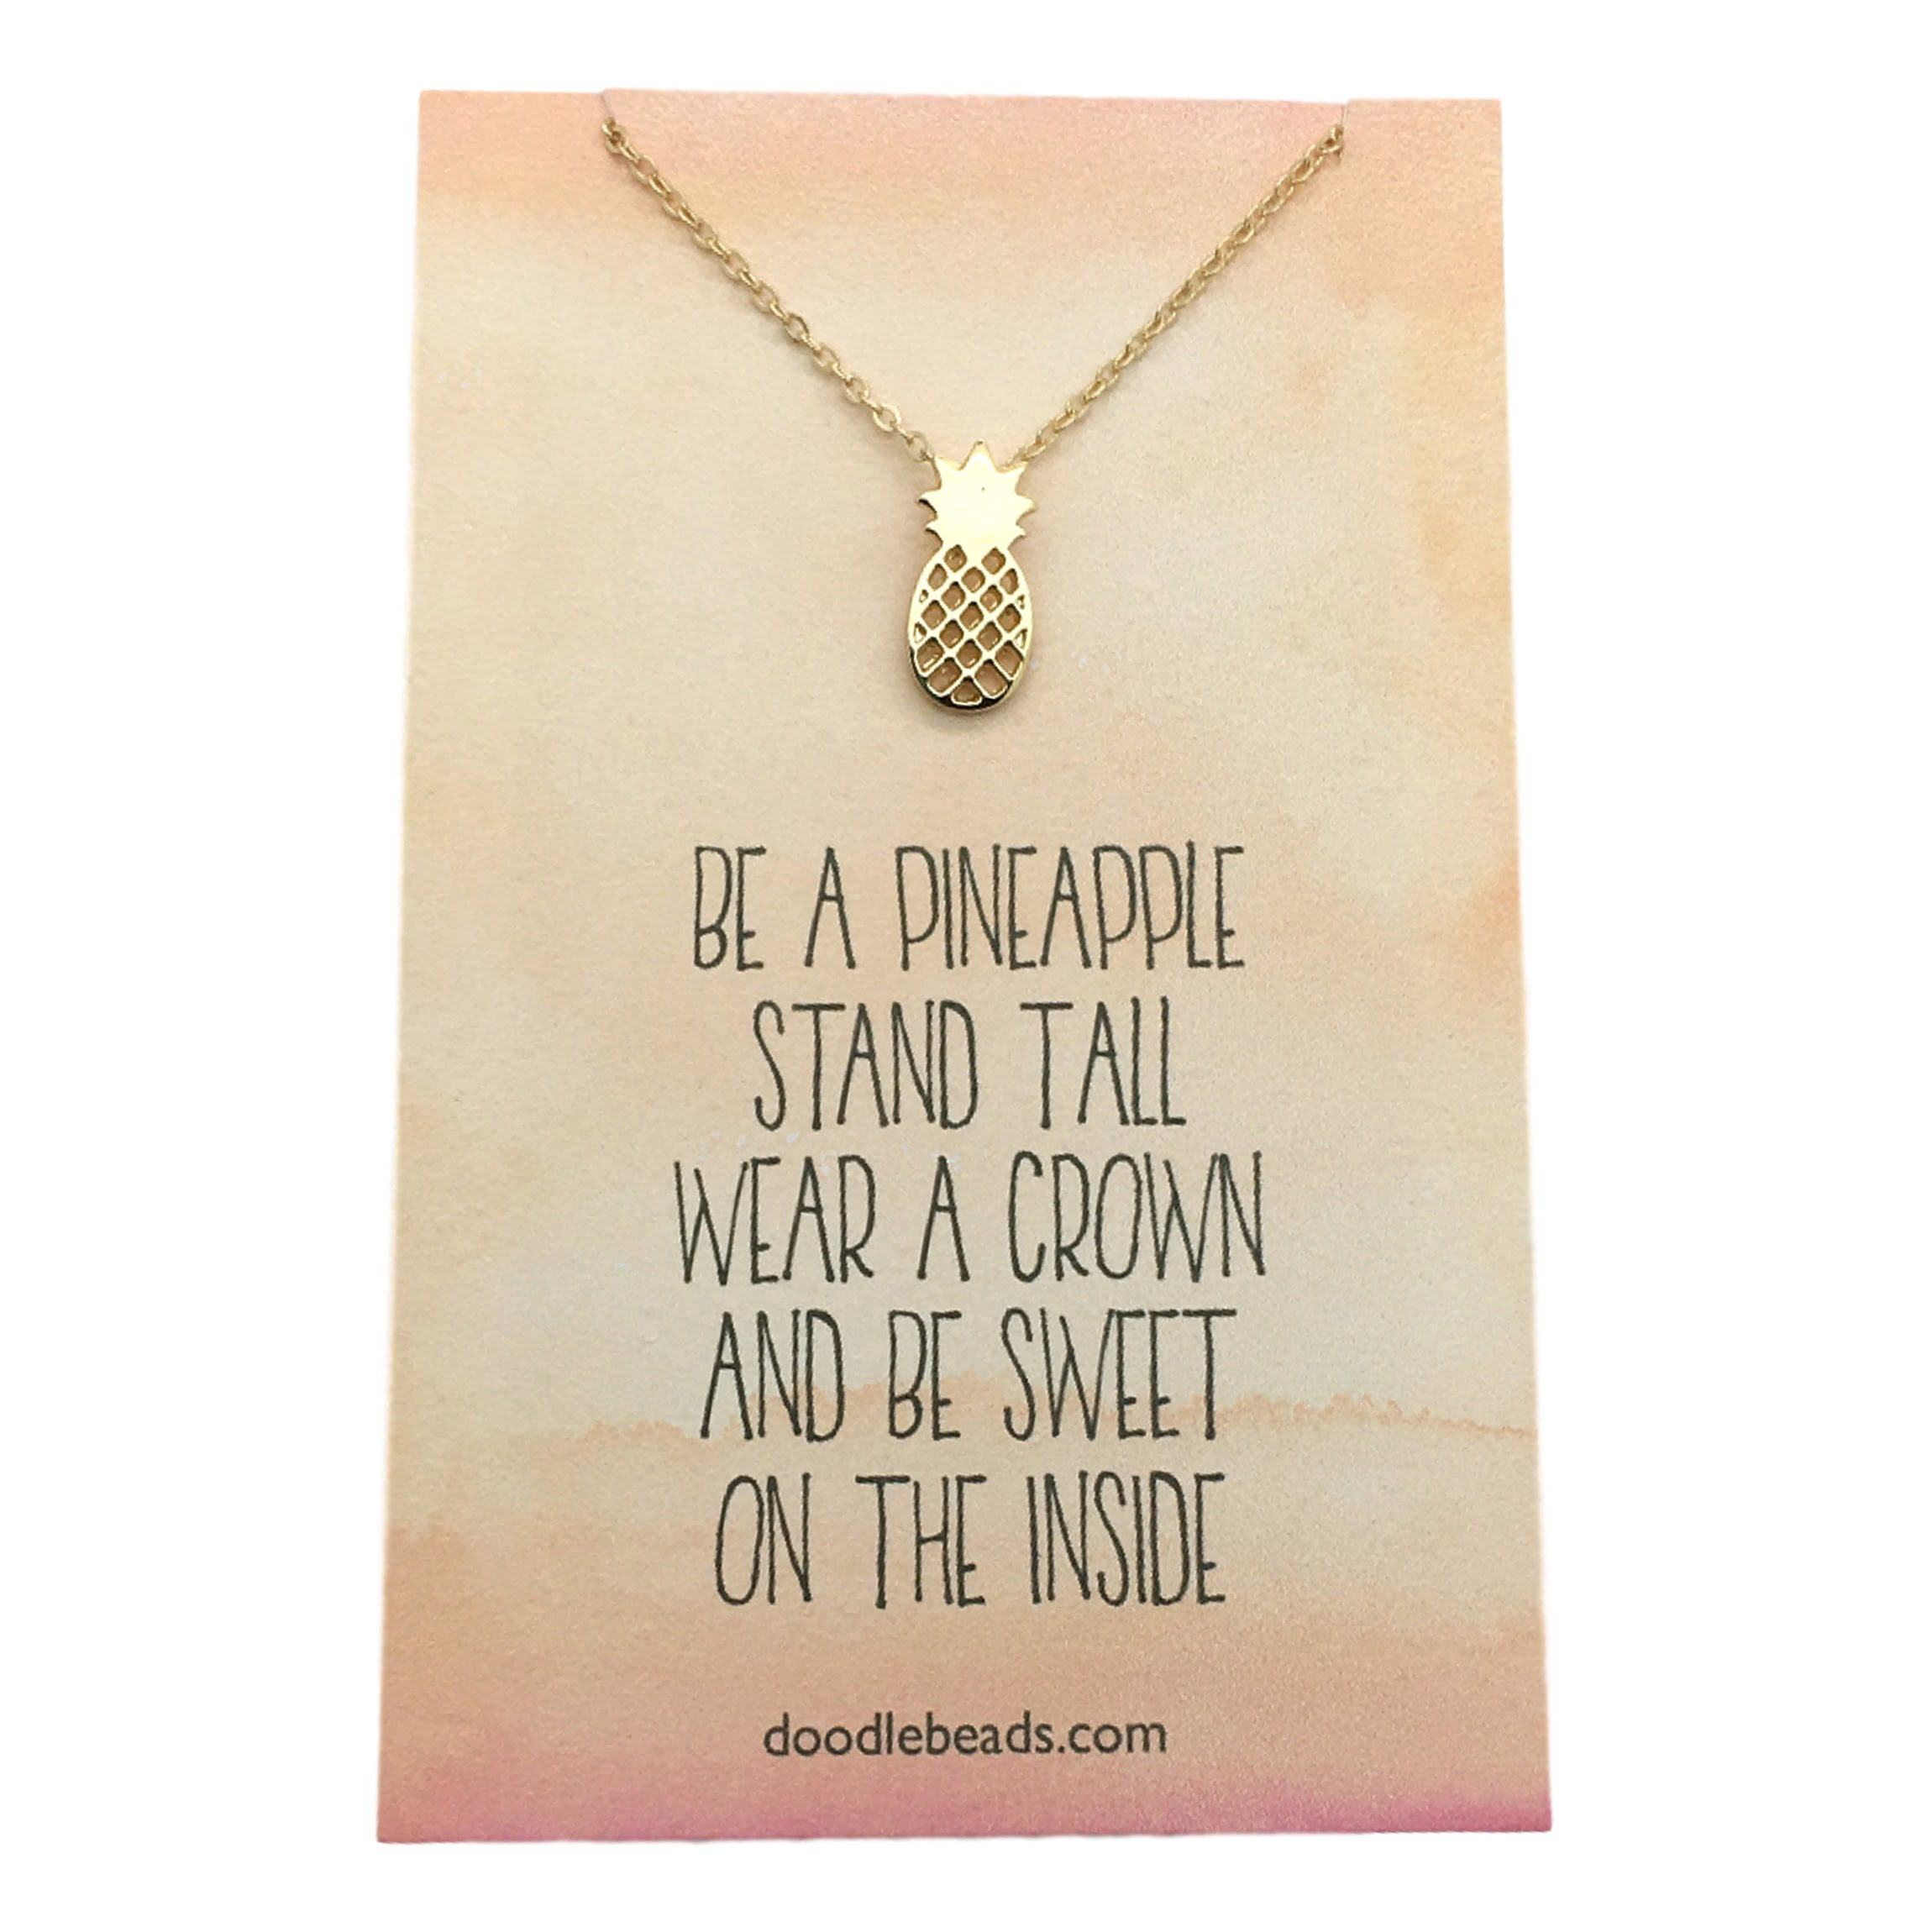 pineapple london image sixton products necklace